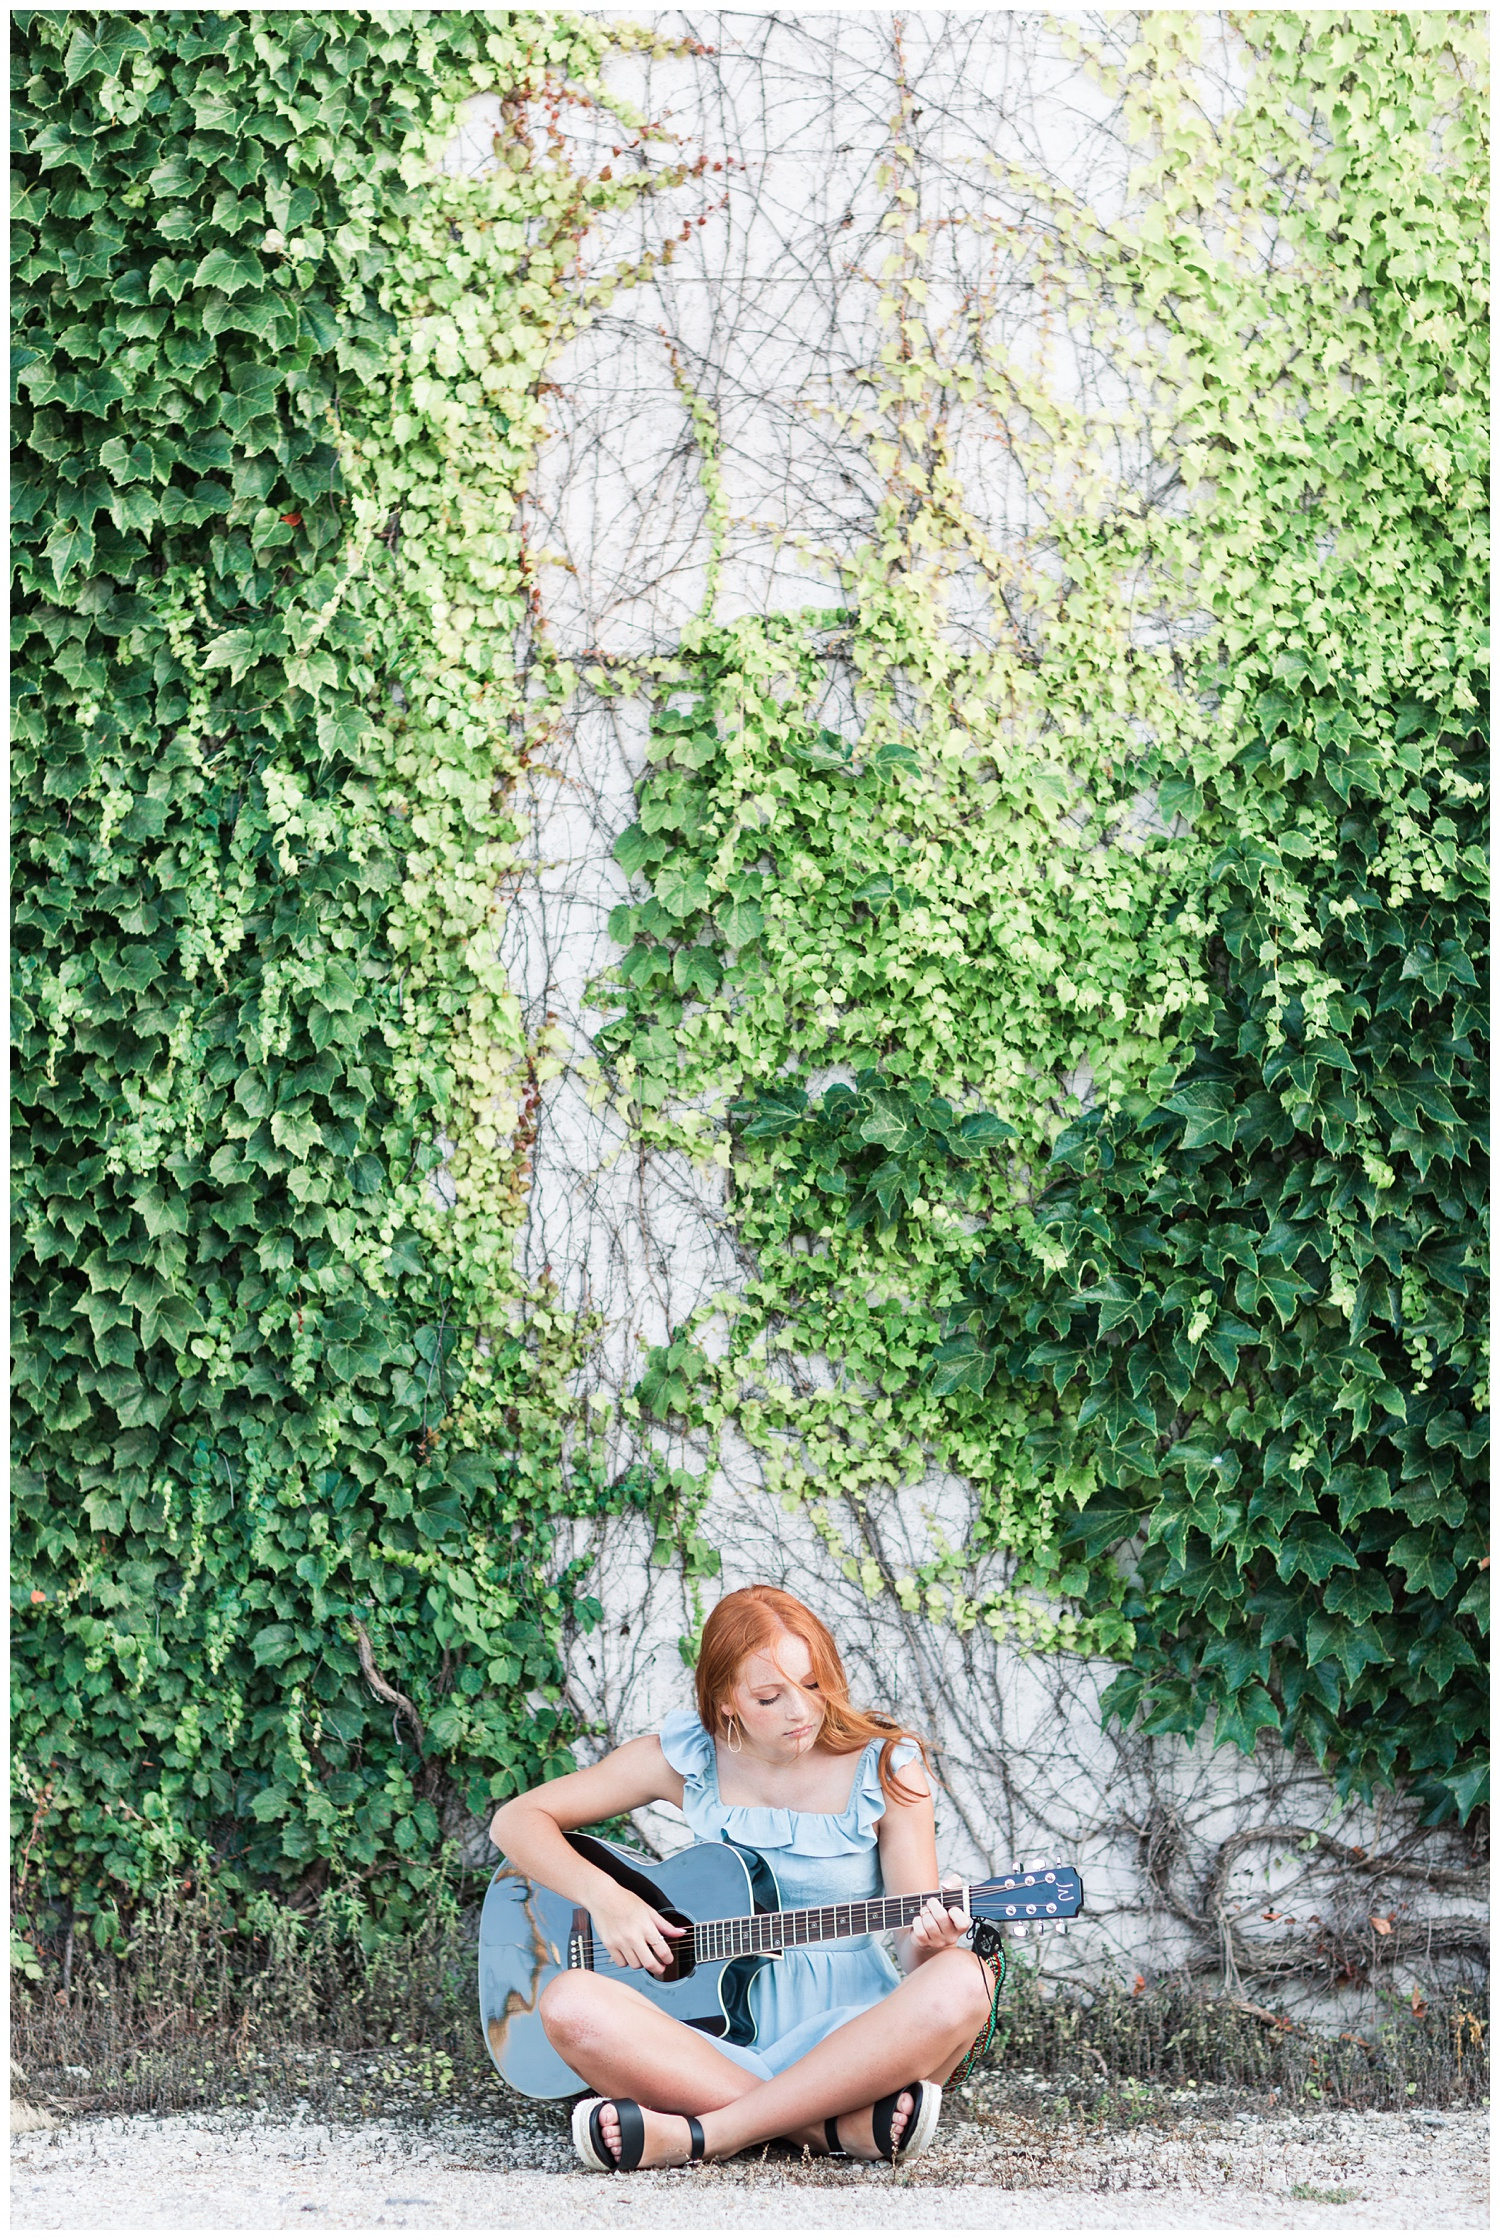 Senior girl sitting next to a green vine wall playing guitar in West Bend, Iowa | CB Studio